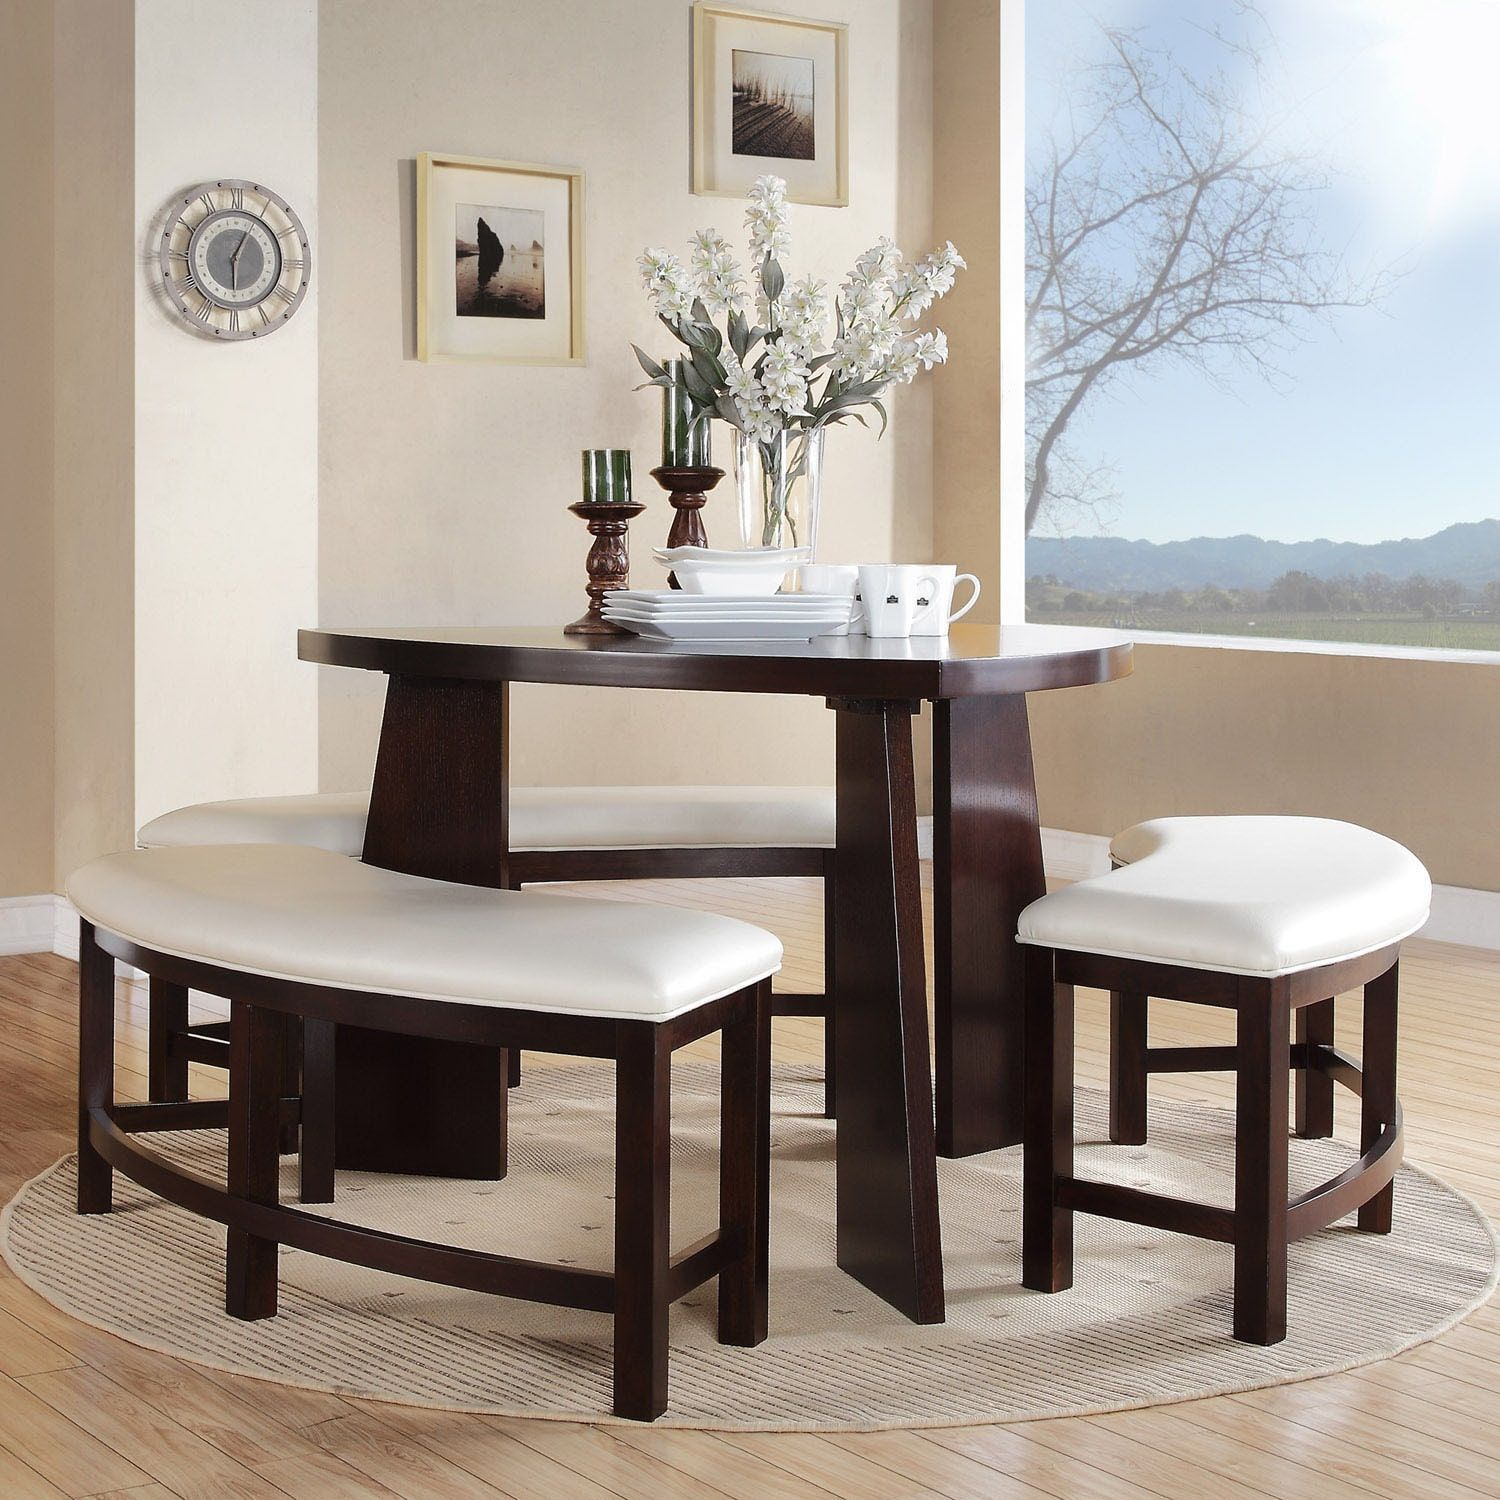 Paradise Merlot Triangle Shaped 4 Piece Dining Set By Inspire Q